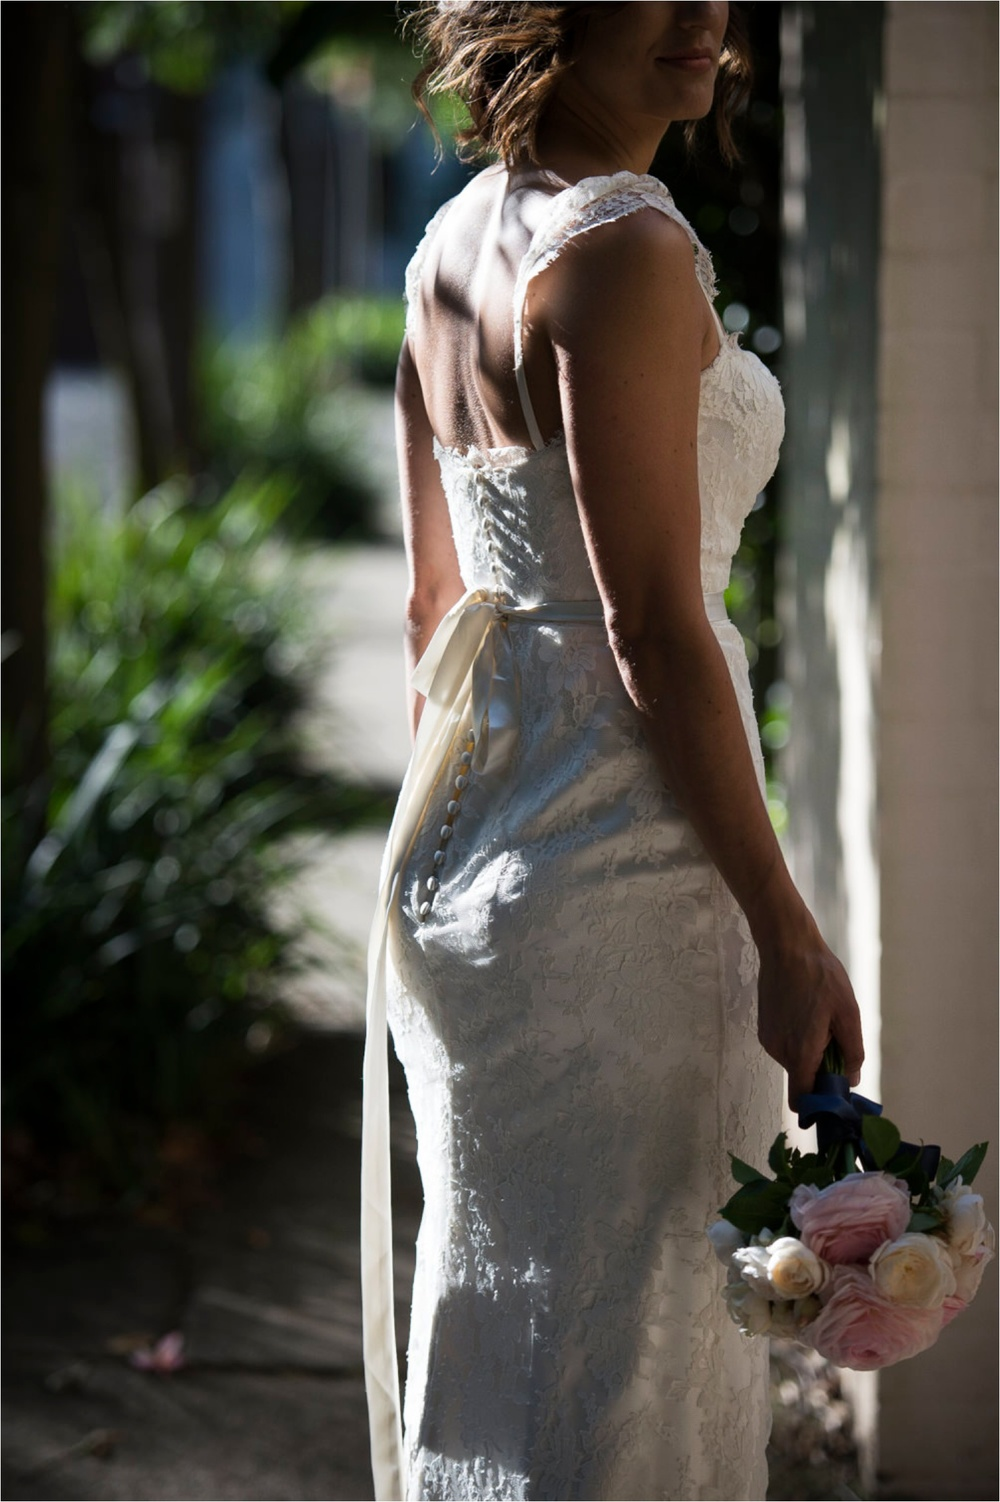 Nicole&Carlie_Watsons_Bay_Hotel_Wedding_by_Gold_Coast_Photographers-The_Follans35.jpg